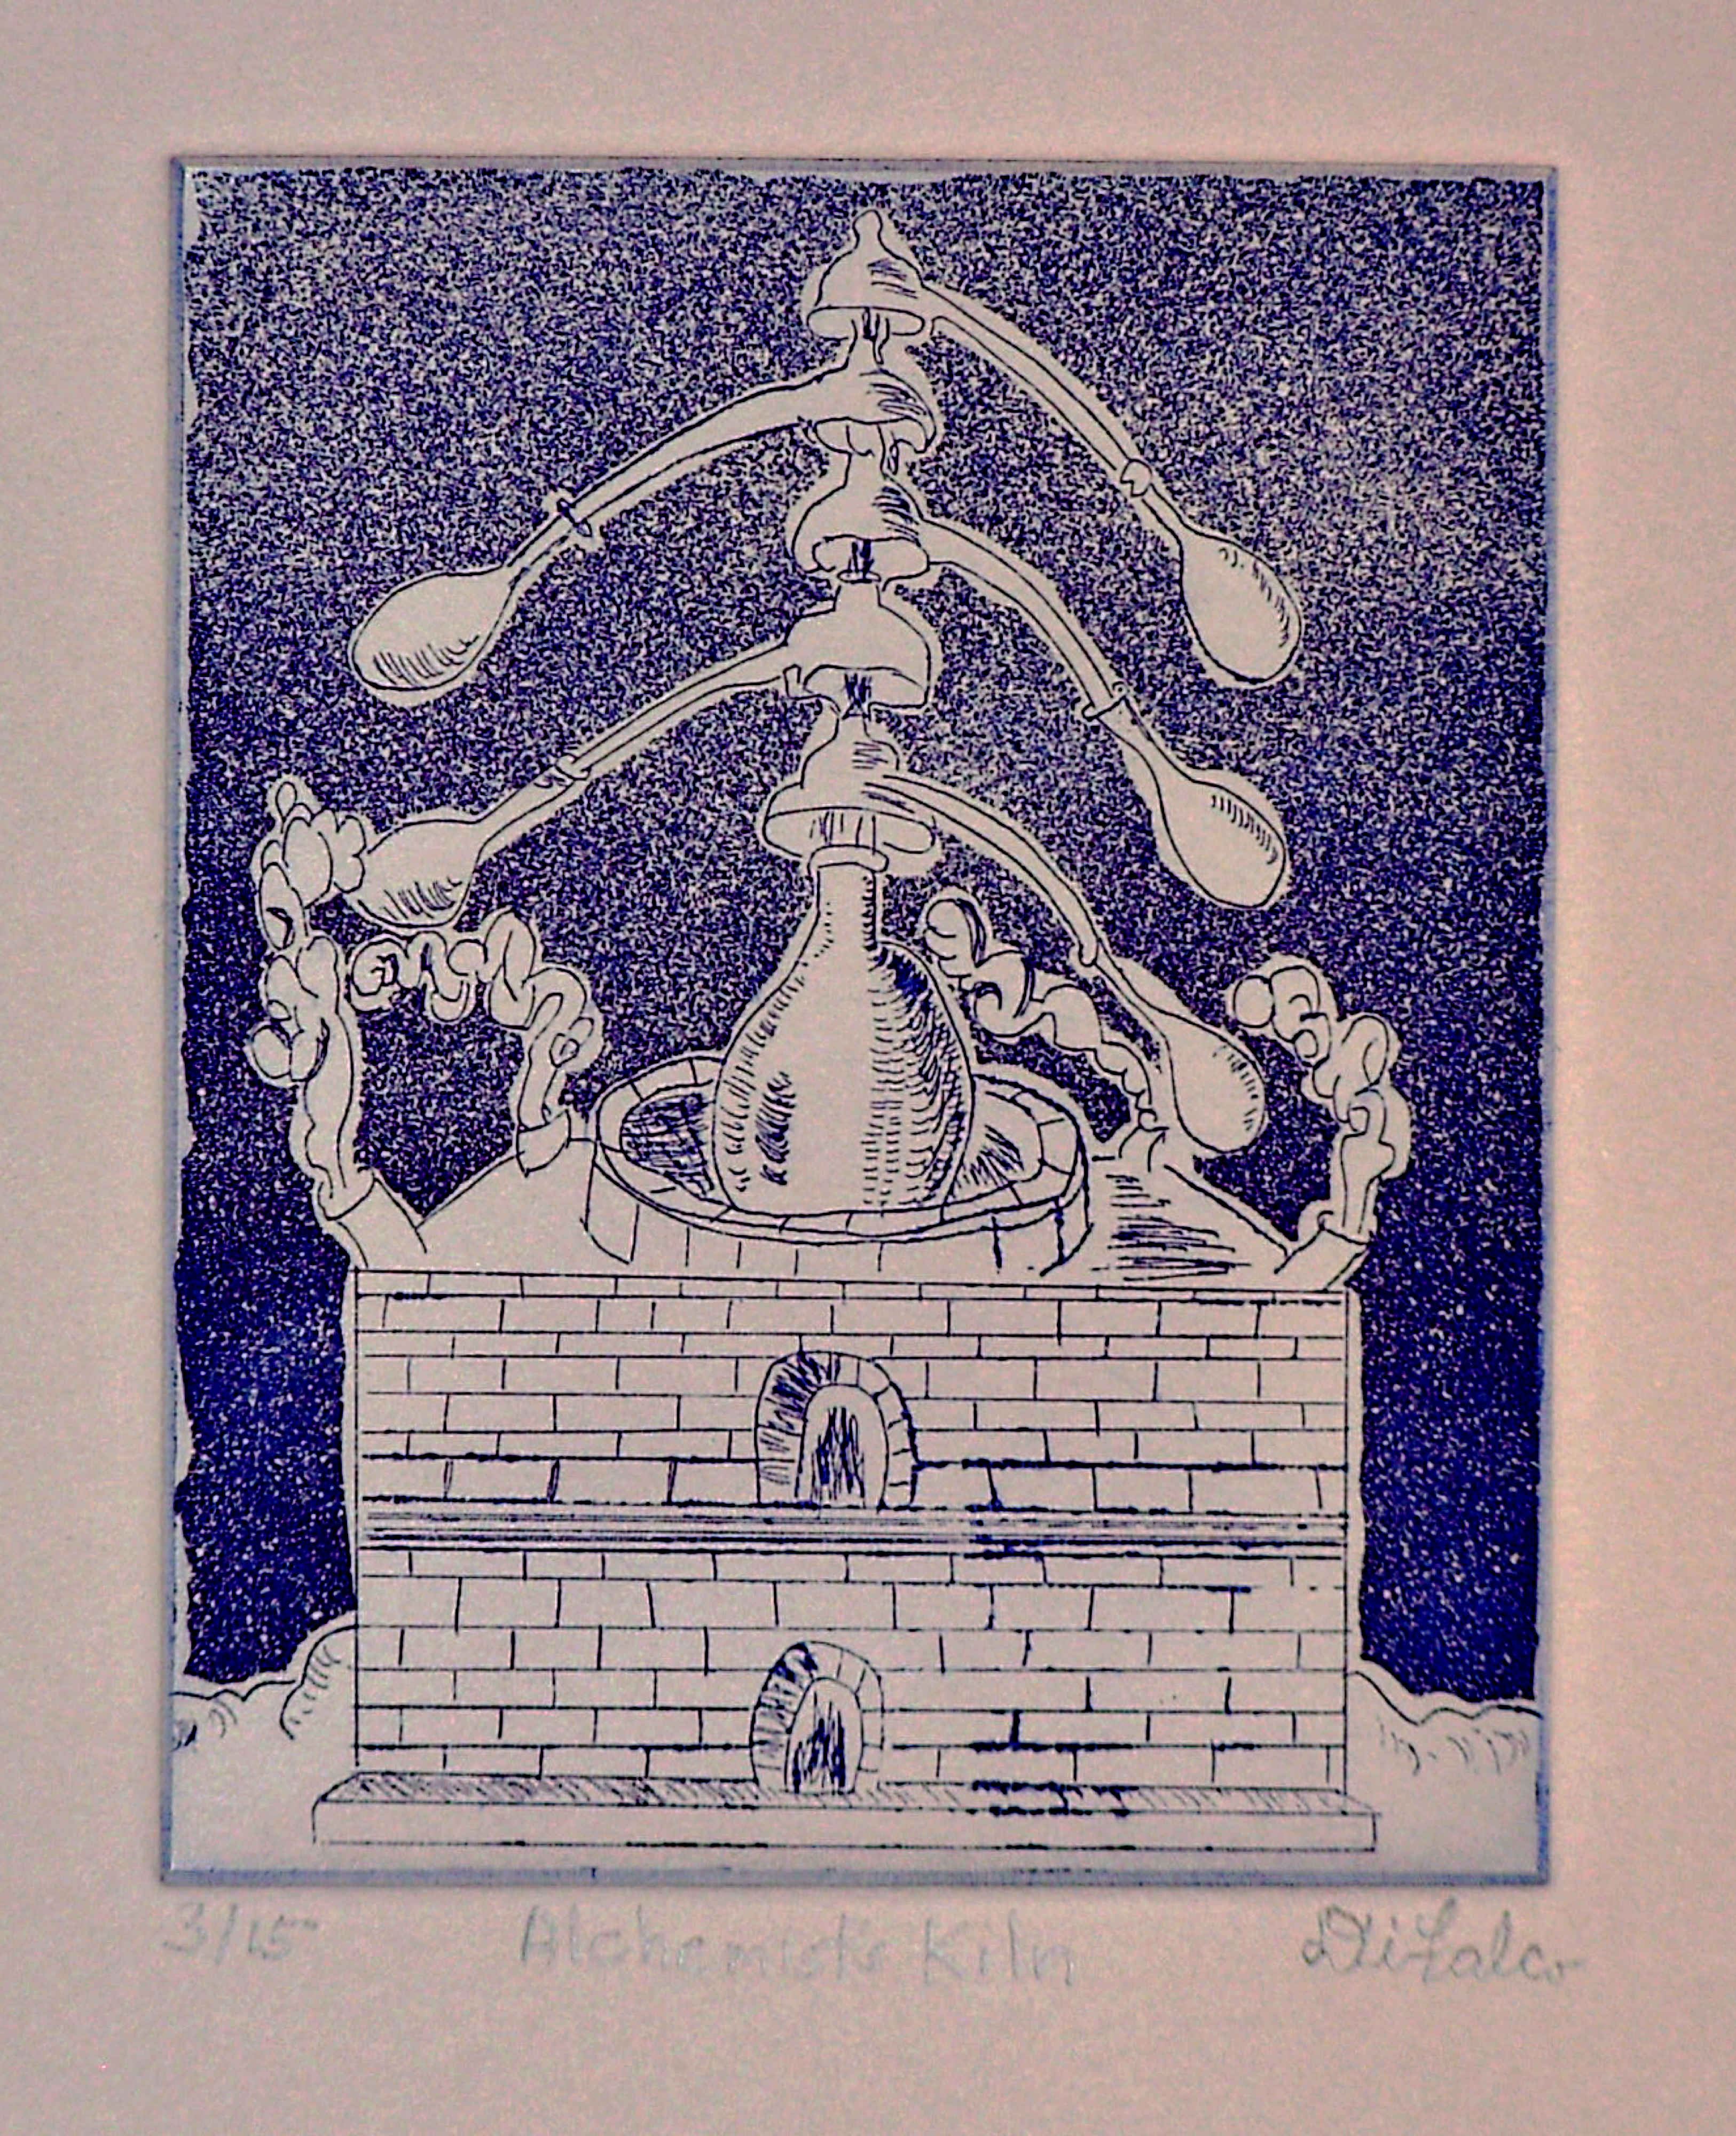 Jerry  Di Falco: 'Kiln of the Alchemist', 2010 Intaglio, Kabbalah. Artist Description:    This mixed technique etching ( intaglio, dry- point, aquatint) is executed using a hand mixed Blue- Violet oil- based etching ink ( all Charbonnel brand from France) on Italian mouldmade grey paper ( called Magnani Pescia) from the town of Cartiera Magnani, where papermaking has thrived for over 400 years. This ...